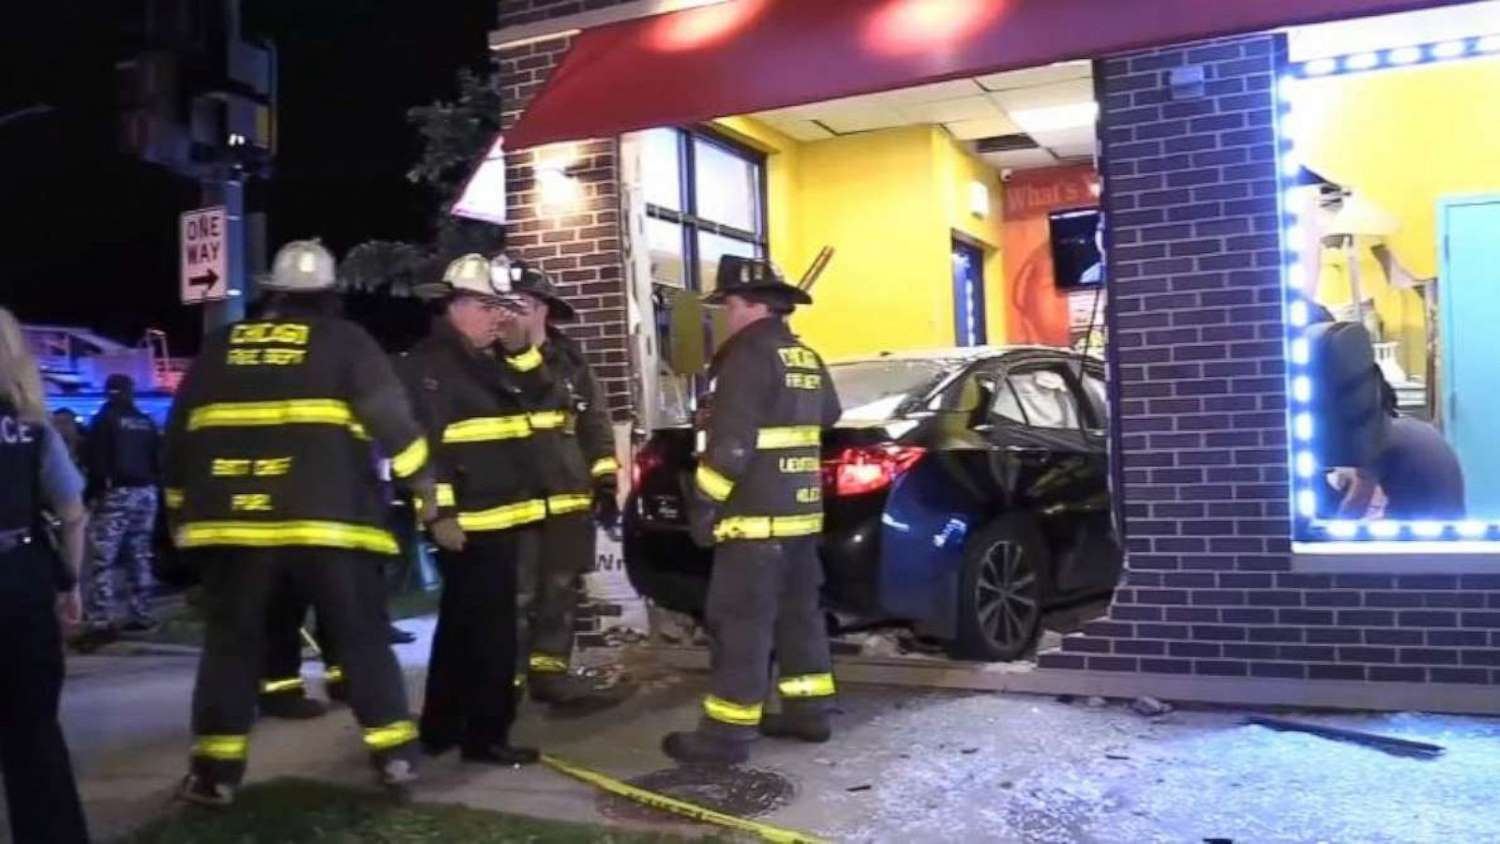 Drunk off-duty police officer crashes into restaurant, kills woman